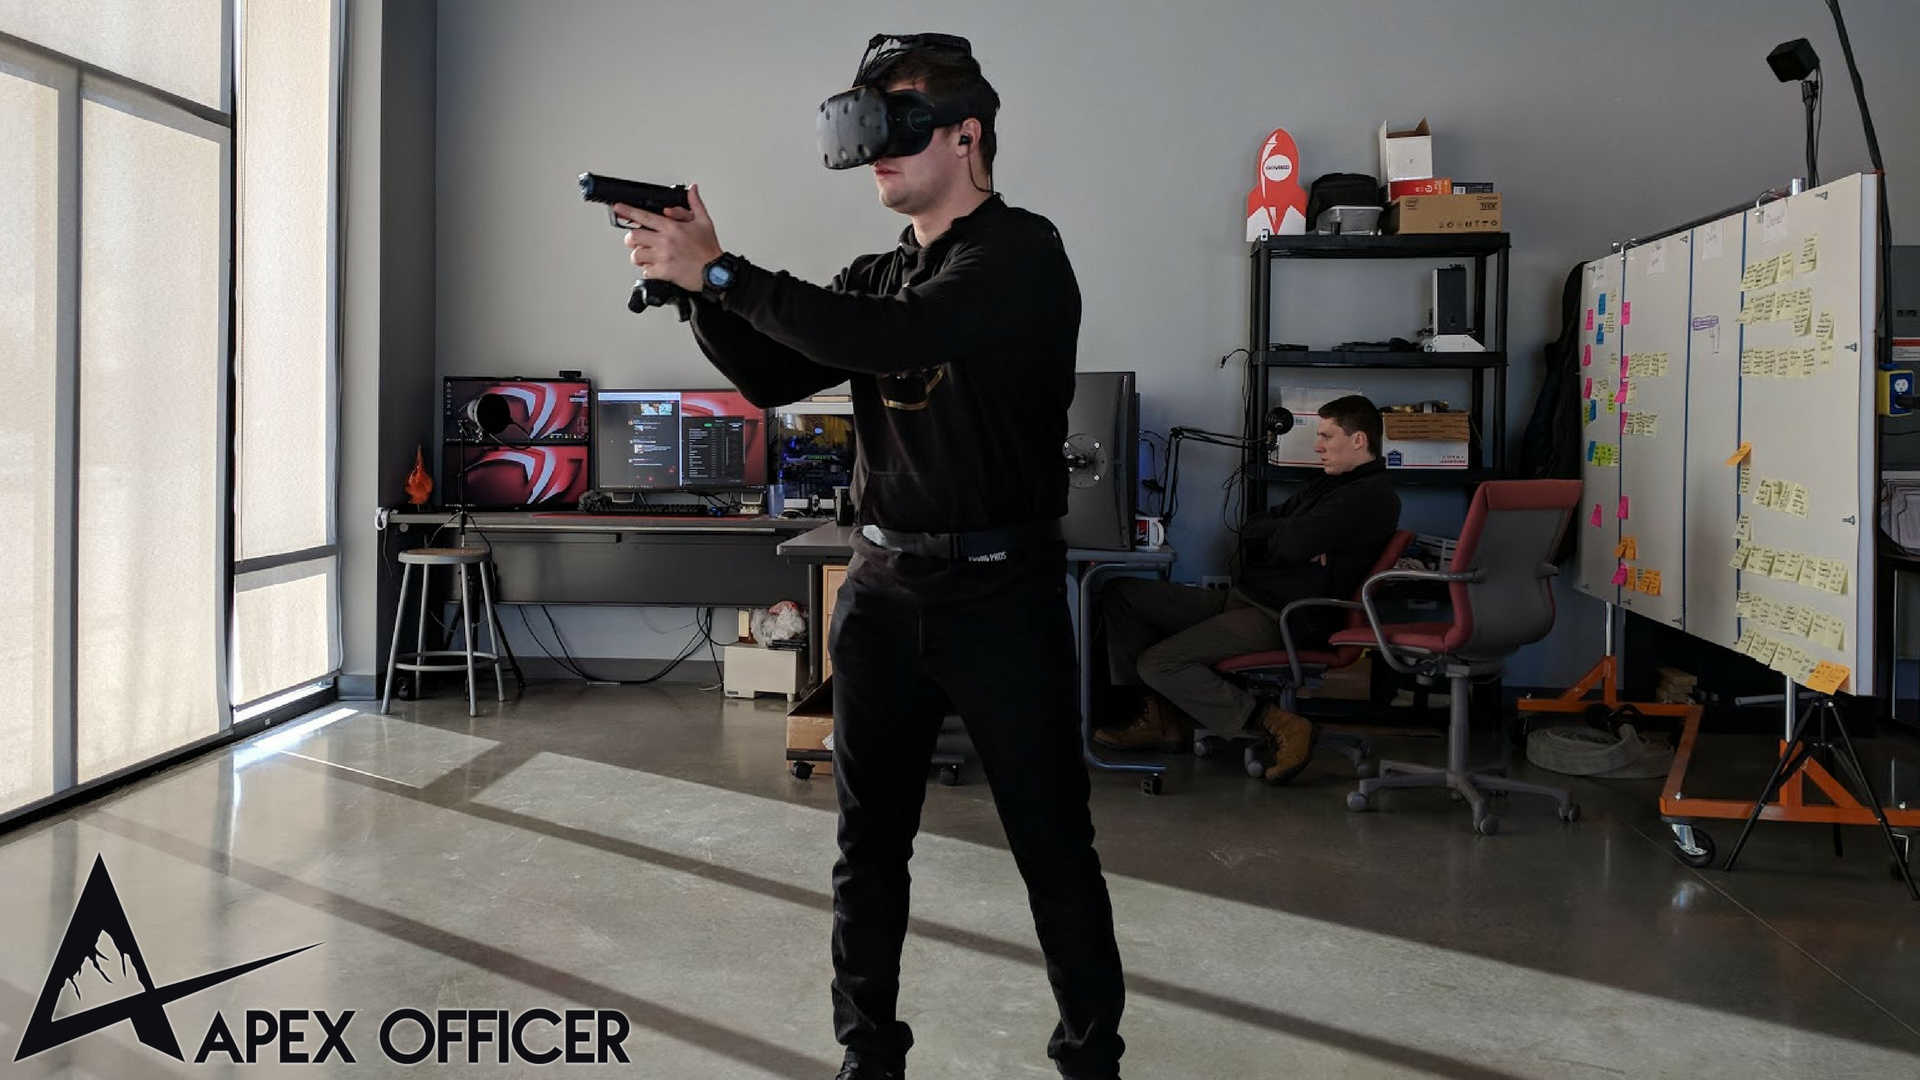 Demoing APEX Officer's wireless virtual reality training platform featuring TPCast.